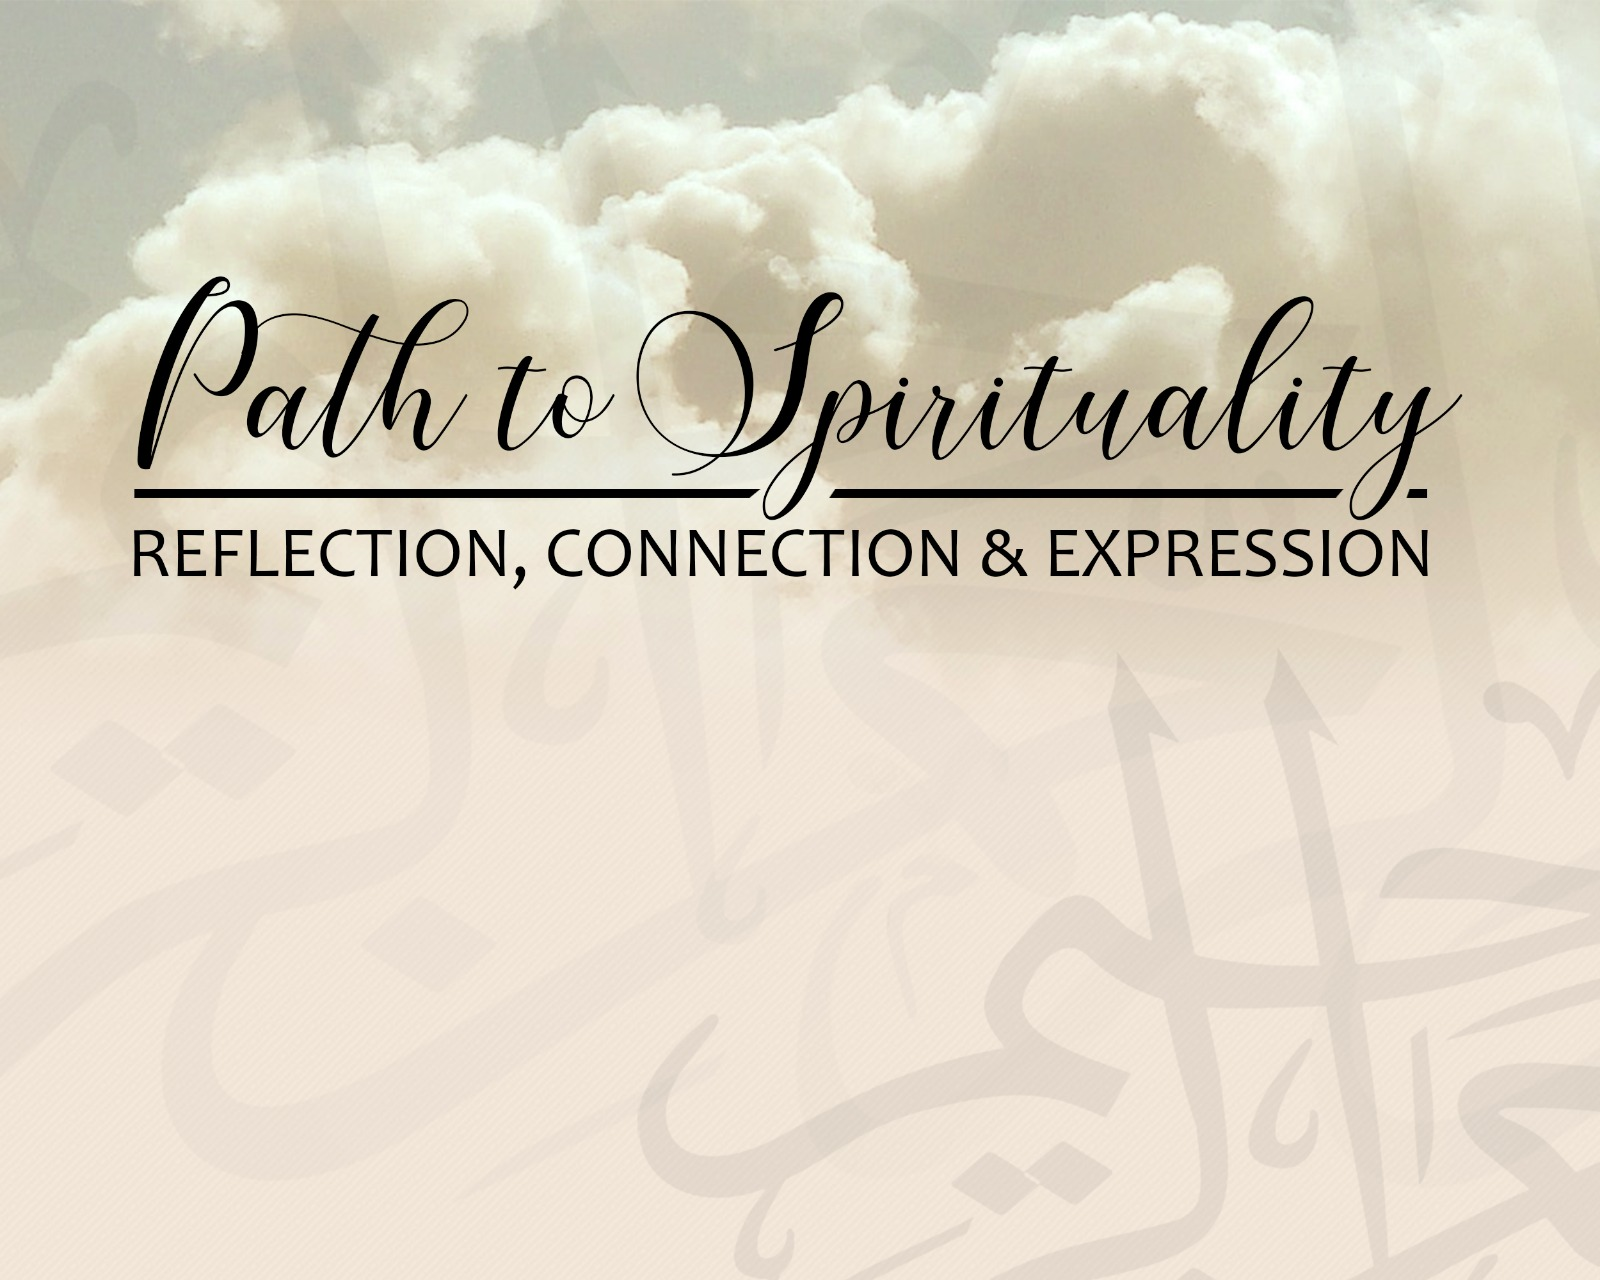 Path to Spirituality: Reflection, Connection, & Expression